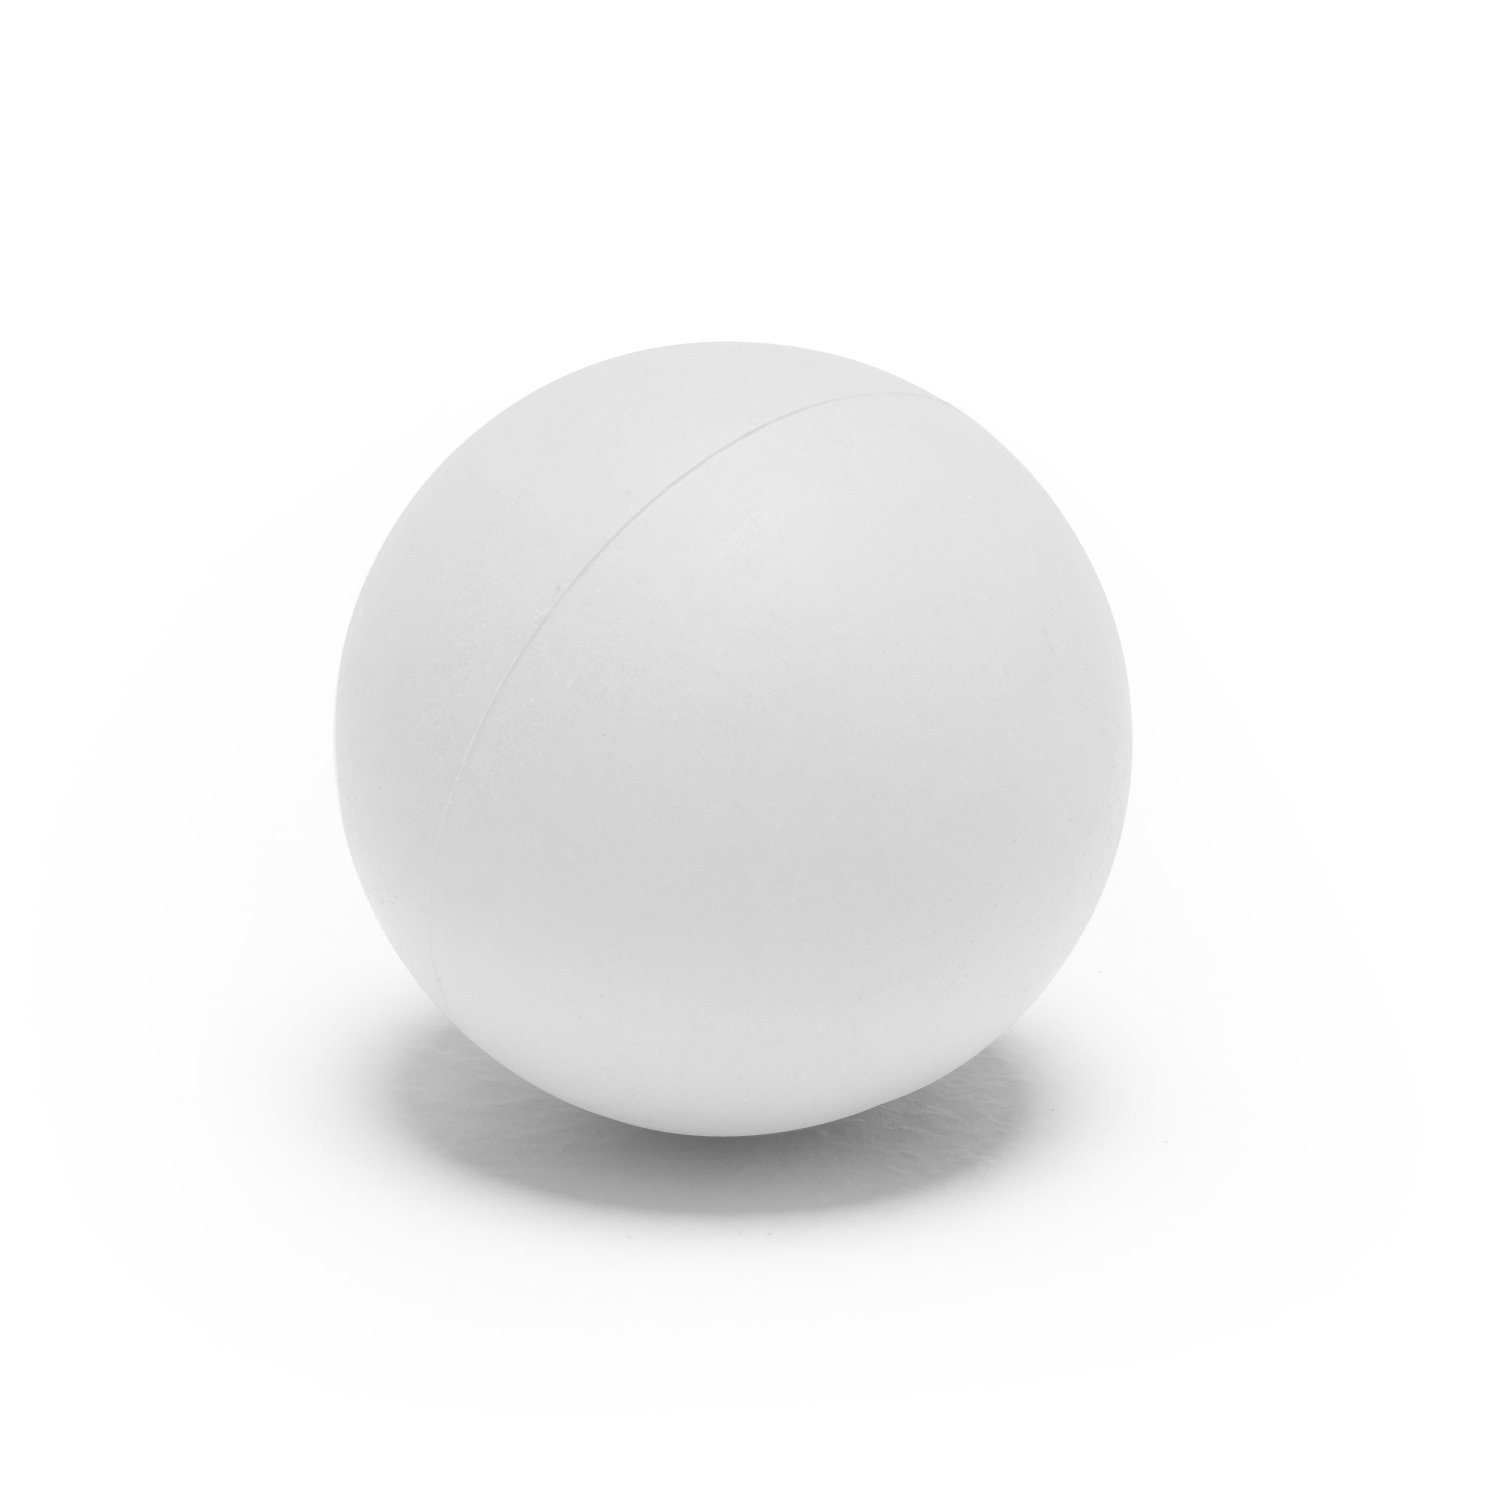 Champion Sports Soft Sponge Safe Indoor Practice Lacrosse Ball, White (12-Pack)